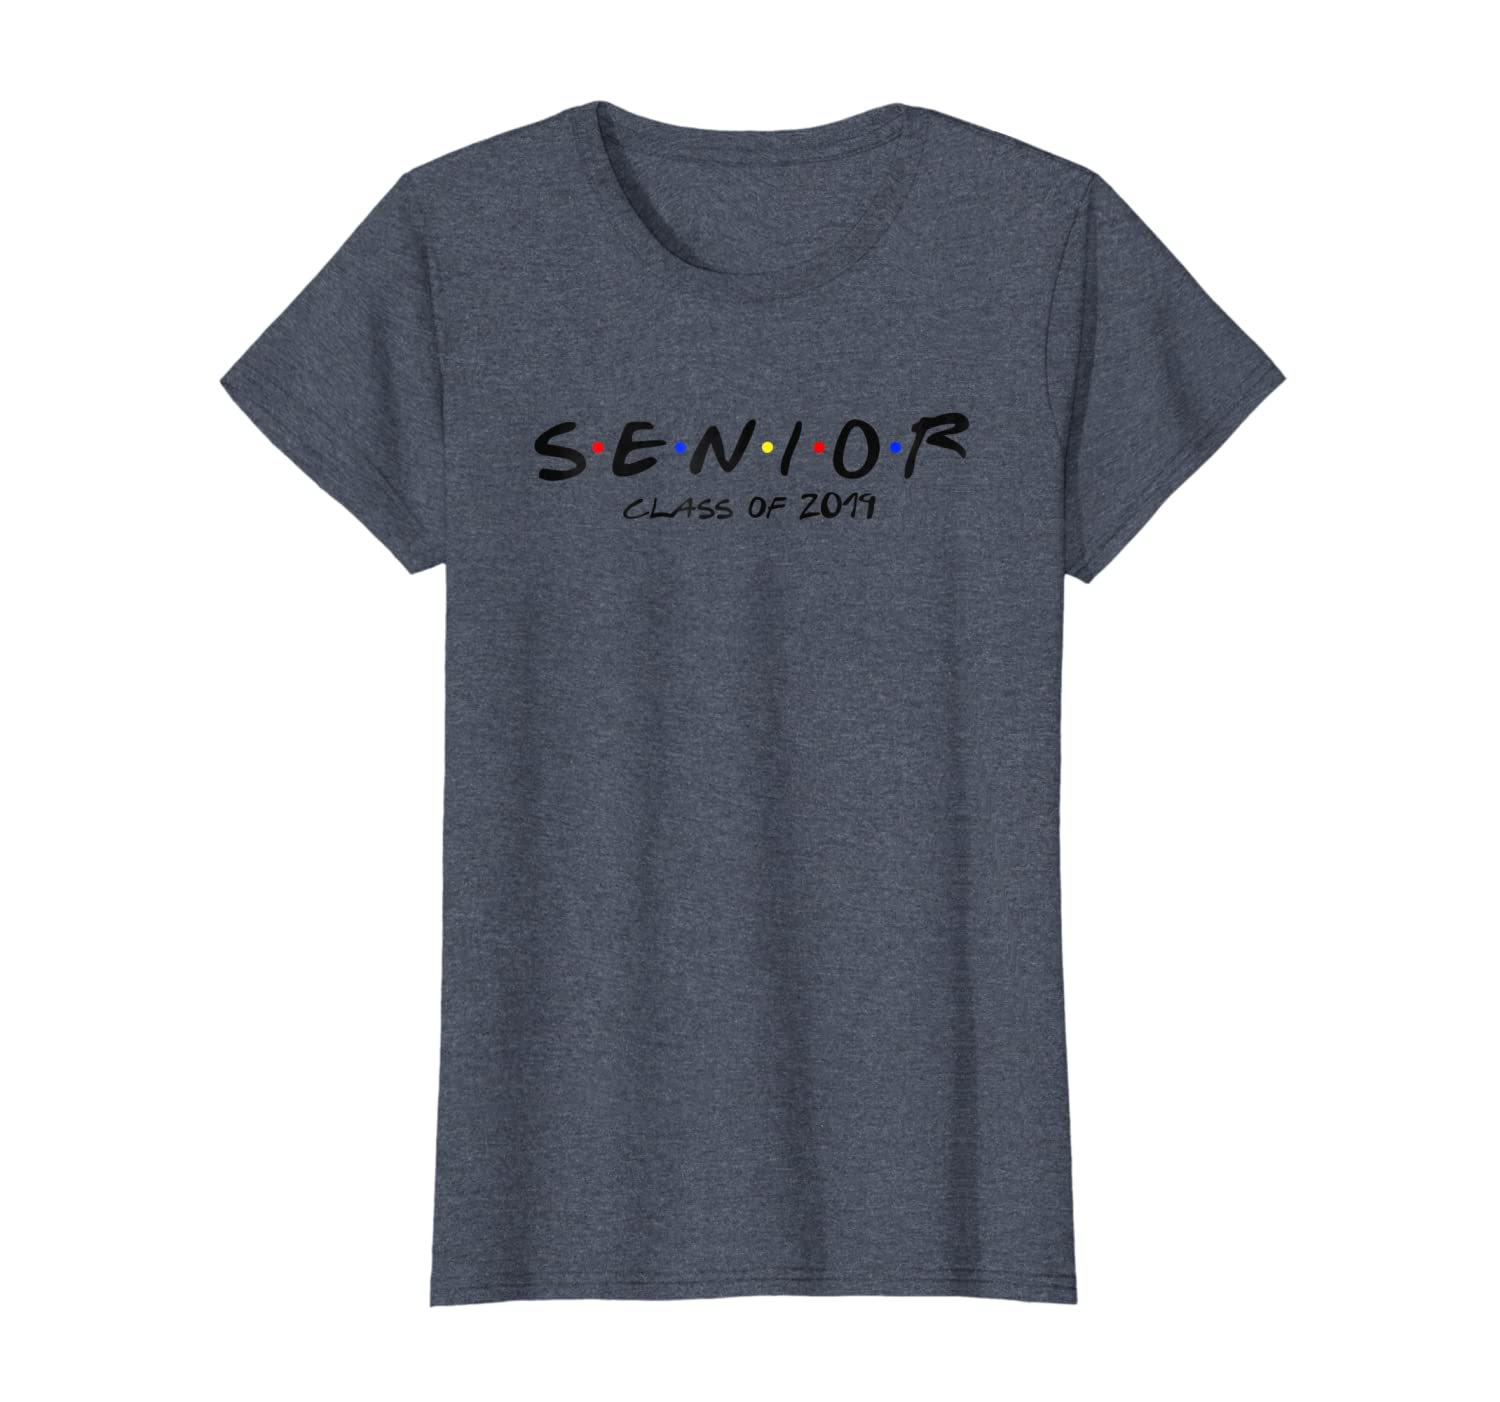 e13e78fba Amazon.com: Senior Class of 2019 Shirt - 2019 Senior Shirt - Seniors:  Clothing